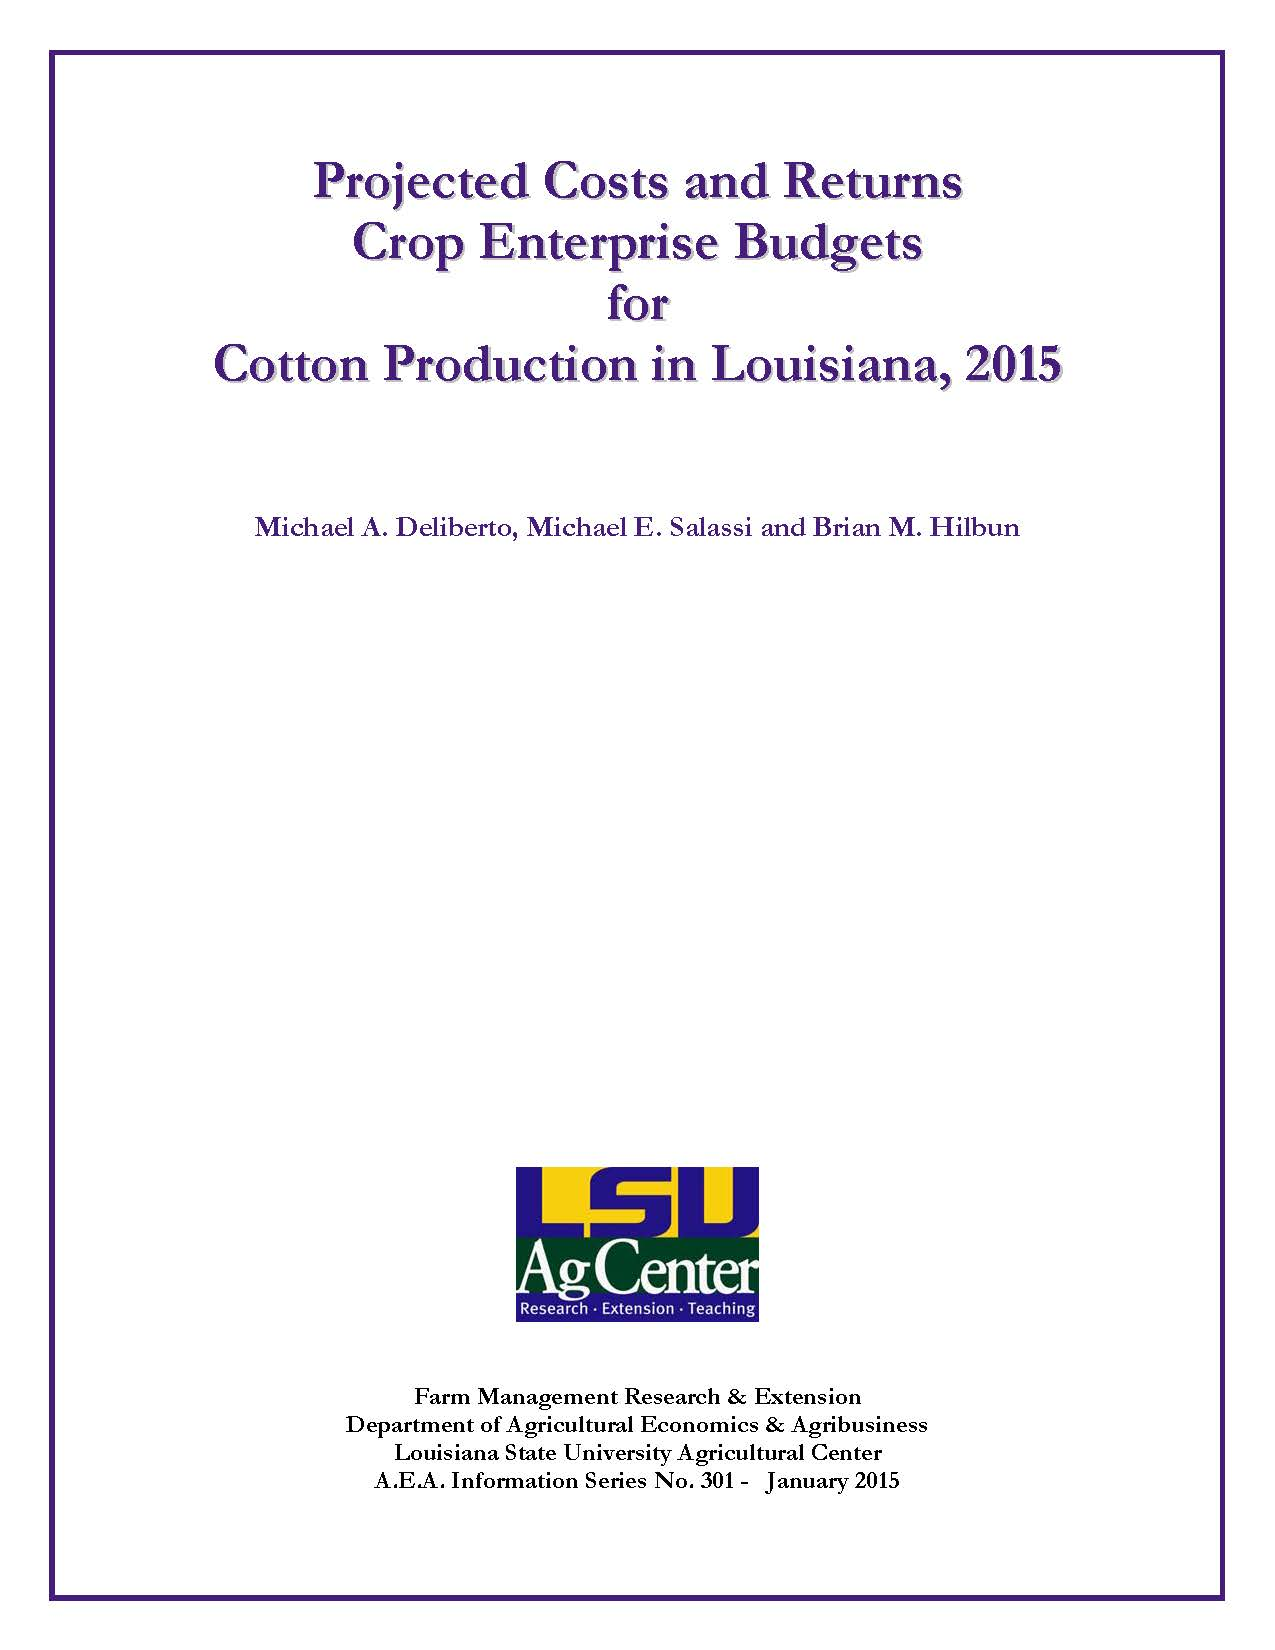 Projected Costs and Returns Crop Enterprise Budgets for Cotton Production in Louisiana 2015